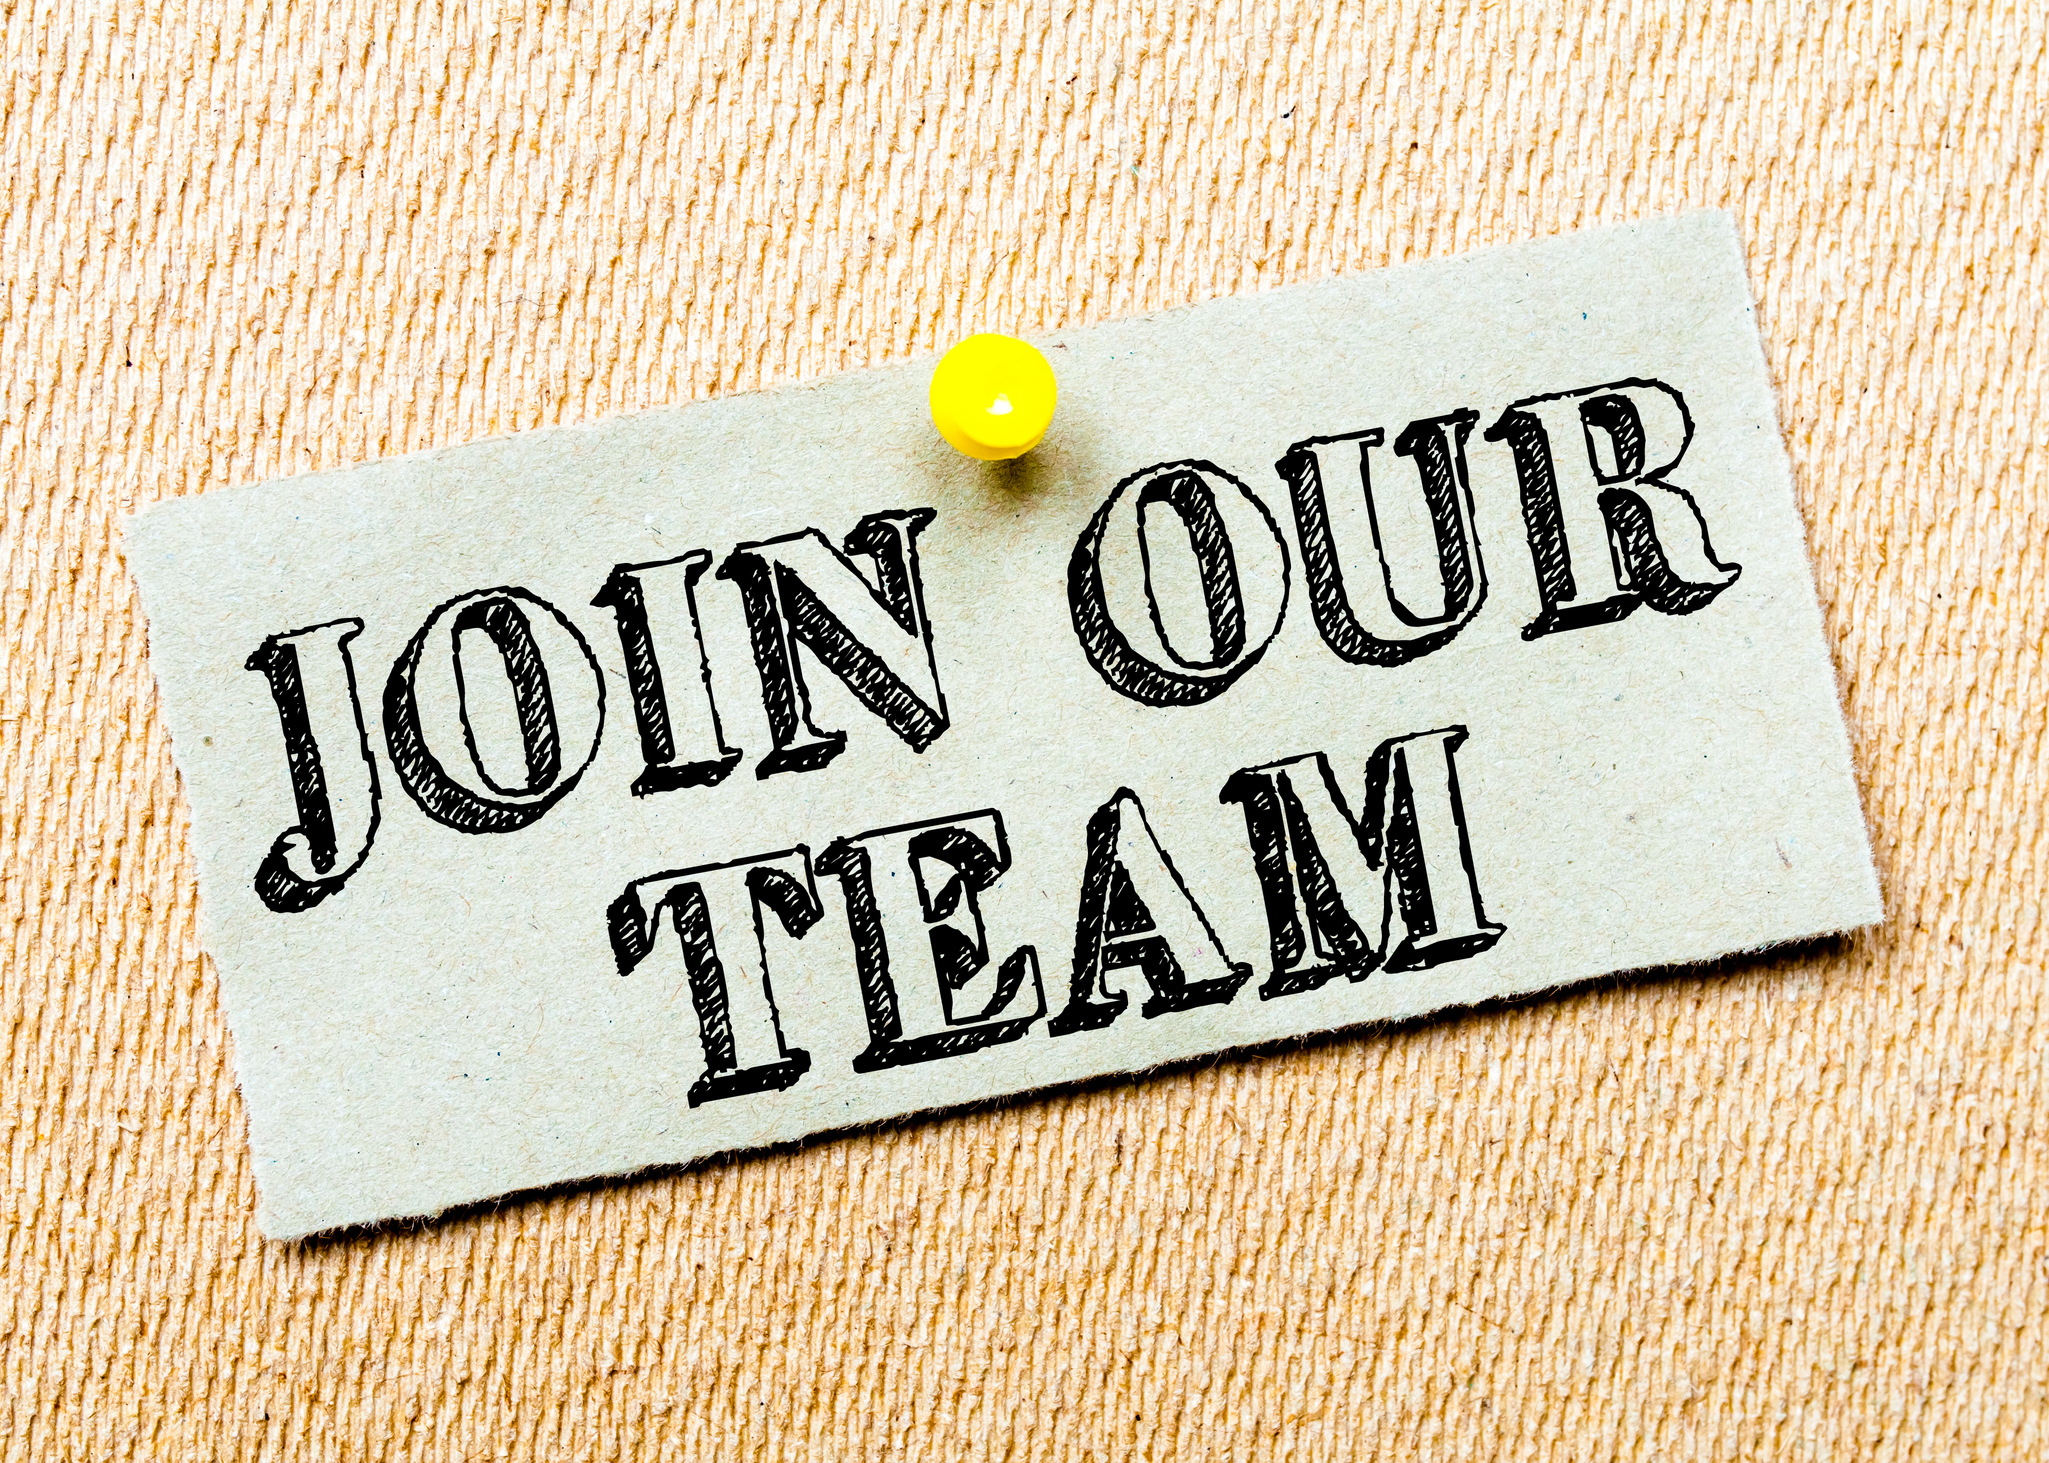 Join our Team! - We currently seeking to hire skilled independent contractors to join our fabulous team of Couples and Marriage Counselors, Sex Therapists, Sexual Empowerment Coaches, Clinical Sexologists, Relationship Coaches, Holistic Healers & Trauma-Informed Body Workers.We are committed to diversity and consideration of all applicants for the position(s). We encourage POC & LGBTQIA+ applicants of diverse backgrounds to apply.